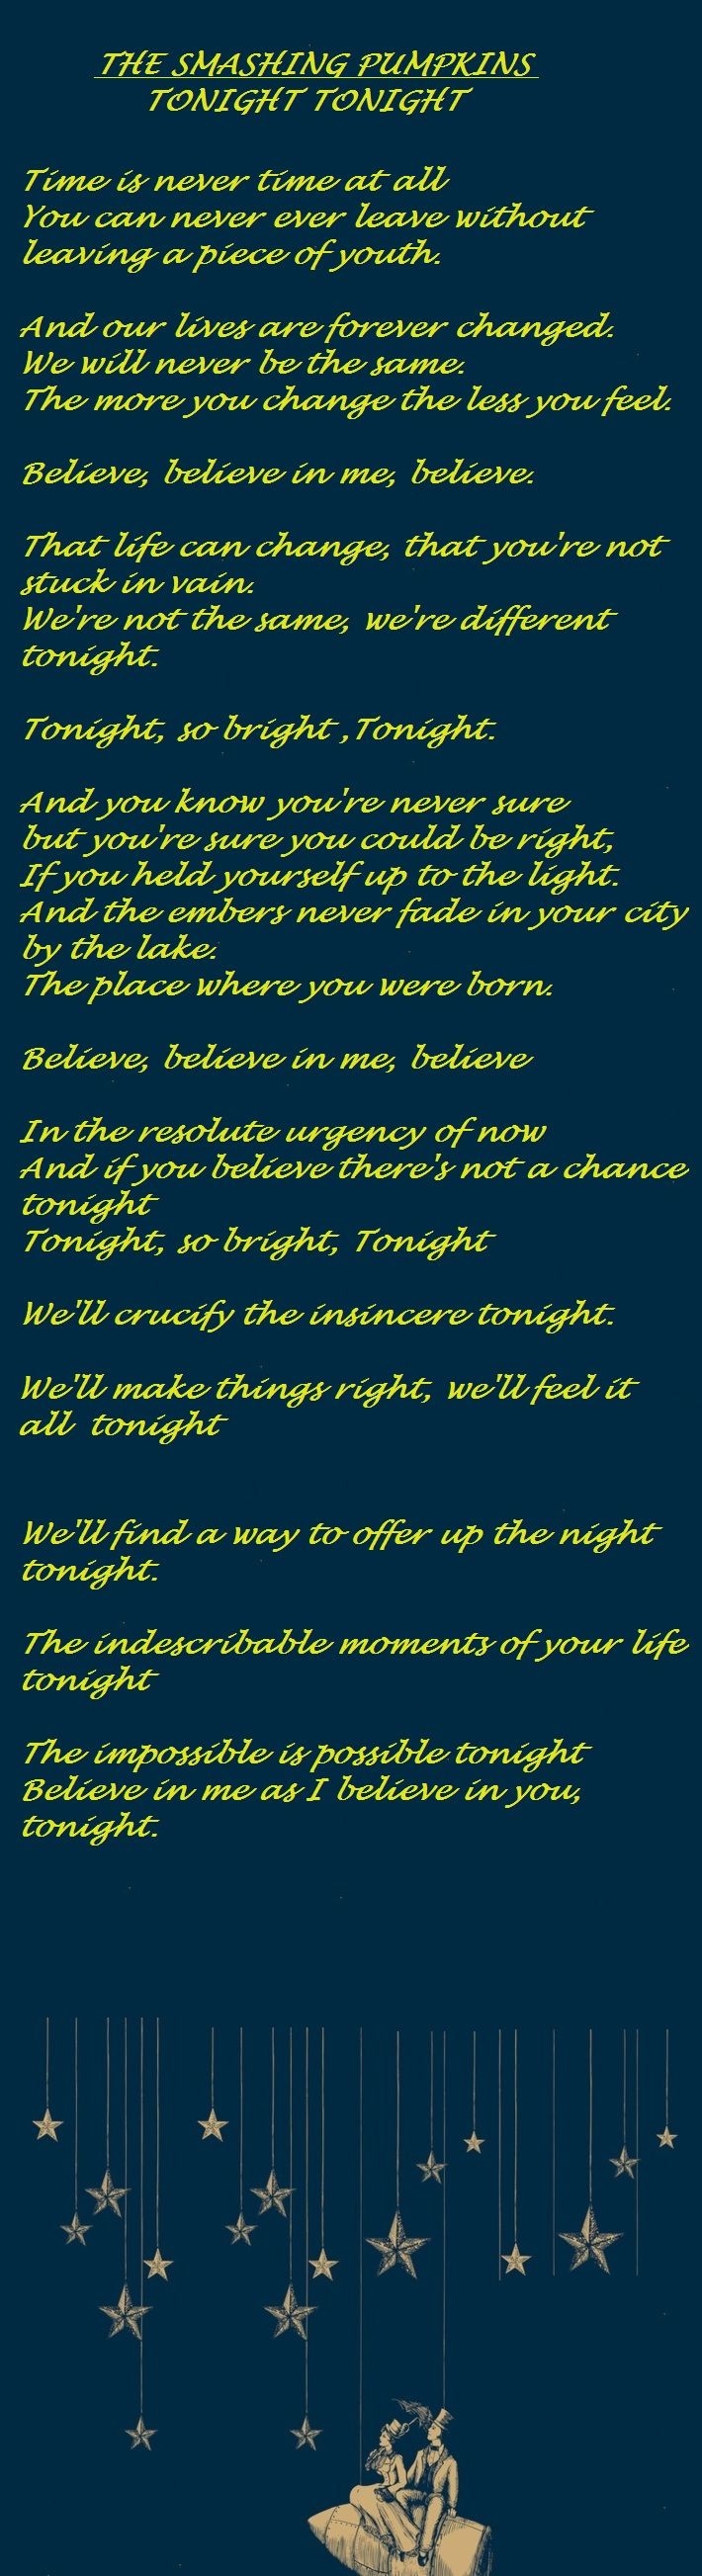 The Smashing Pumpkins Tonight Tonight One Of The Best Songs Of All Time Party Quotes Party Quotes Funny Teenager Quotes